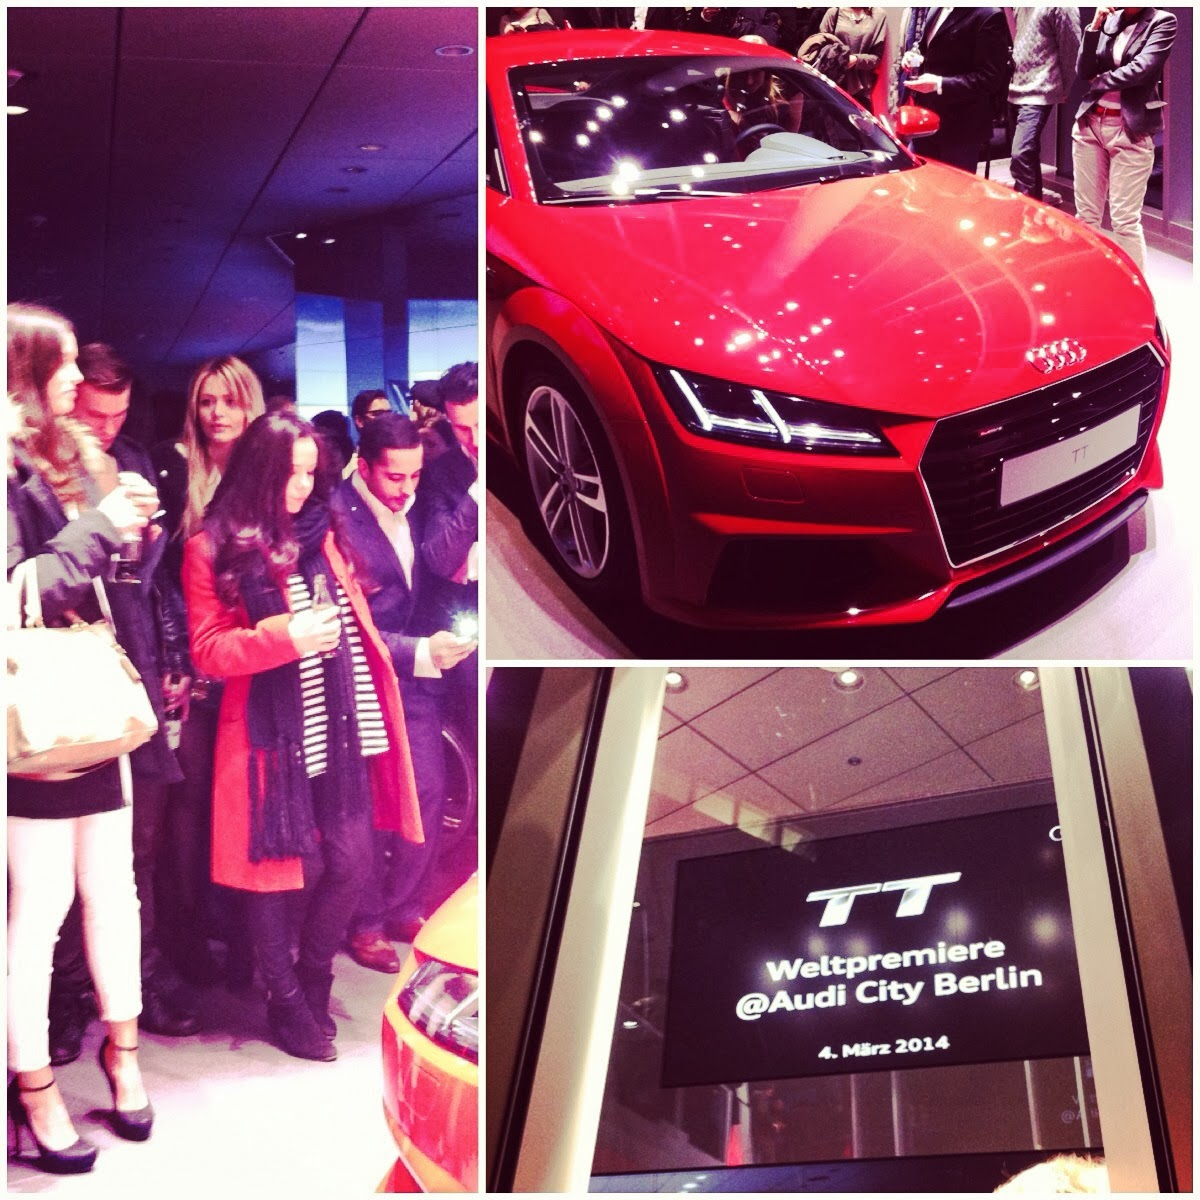 new audi TT coupe 2014, unveiling, august 2014, berlin, kufurstendamm, audi city, iheartblack, blogger, fashion blogger, lifestyle